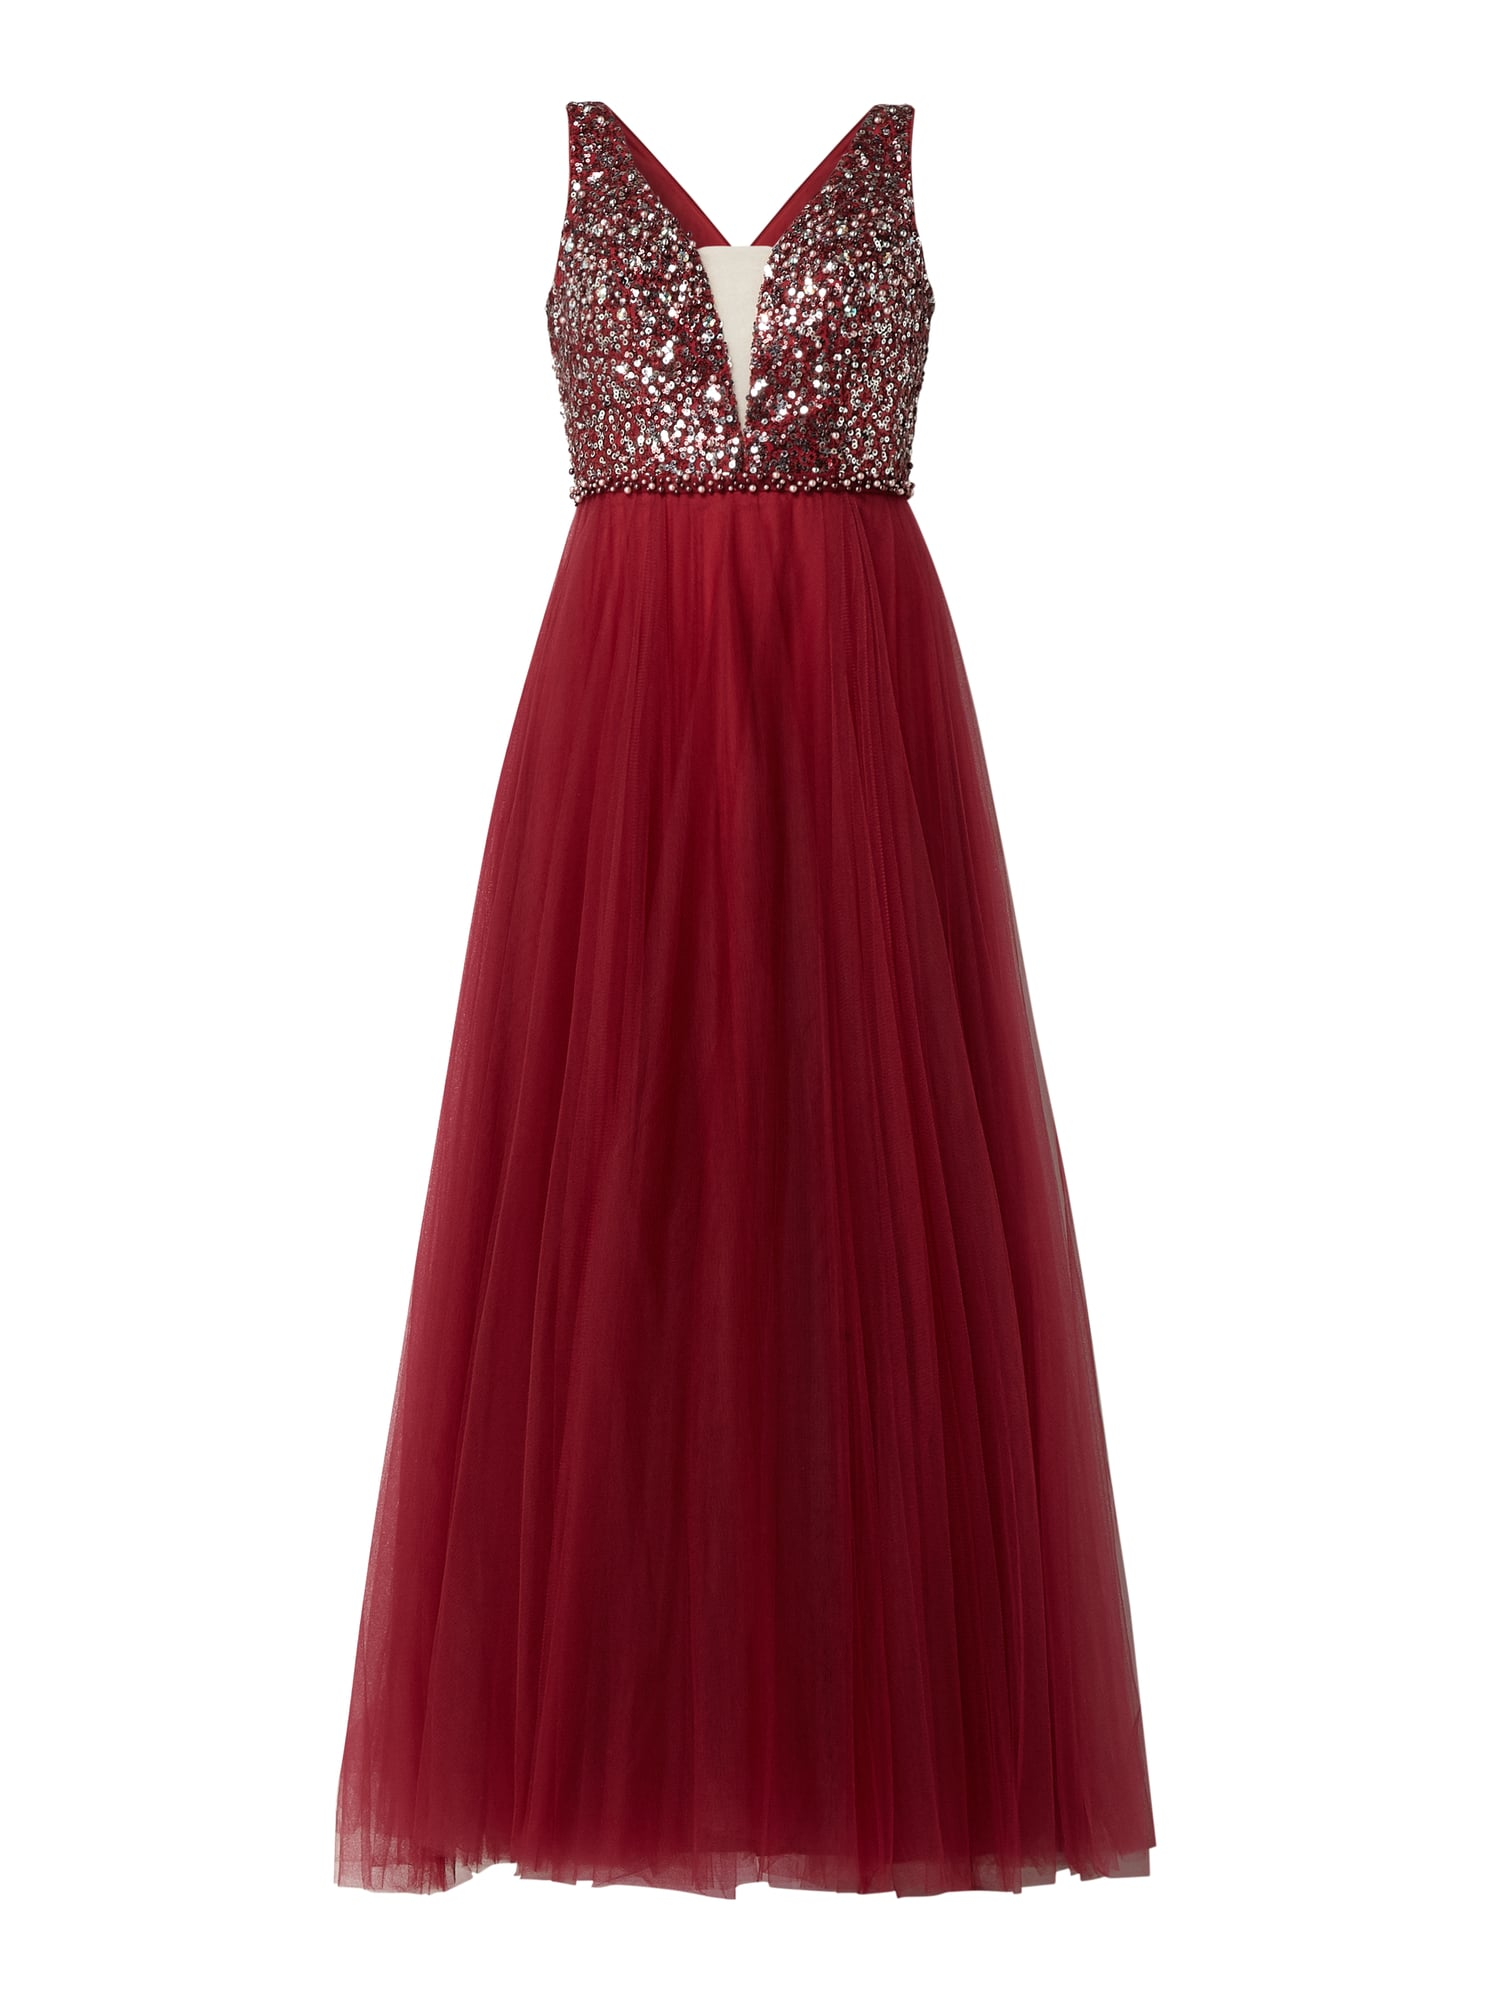 LUXUAR Abendkleid mit Pailletten-Applikationen in Rot online kaufen  (20) ▷ P&C Online Shop